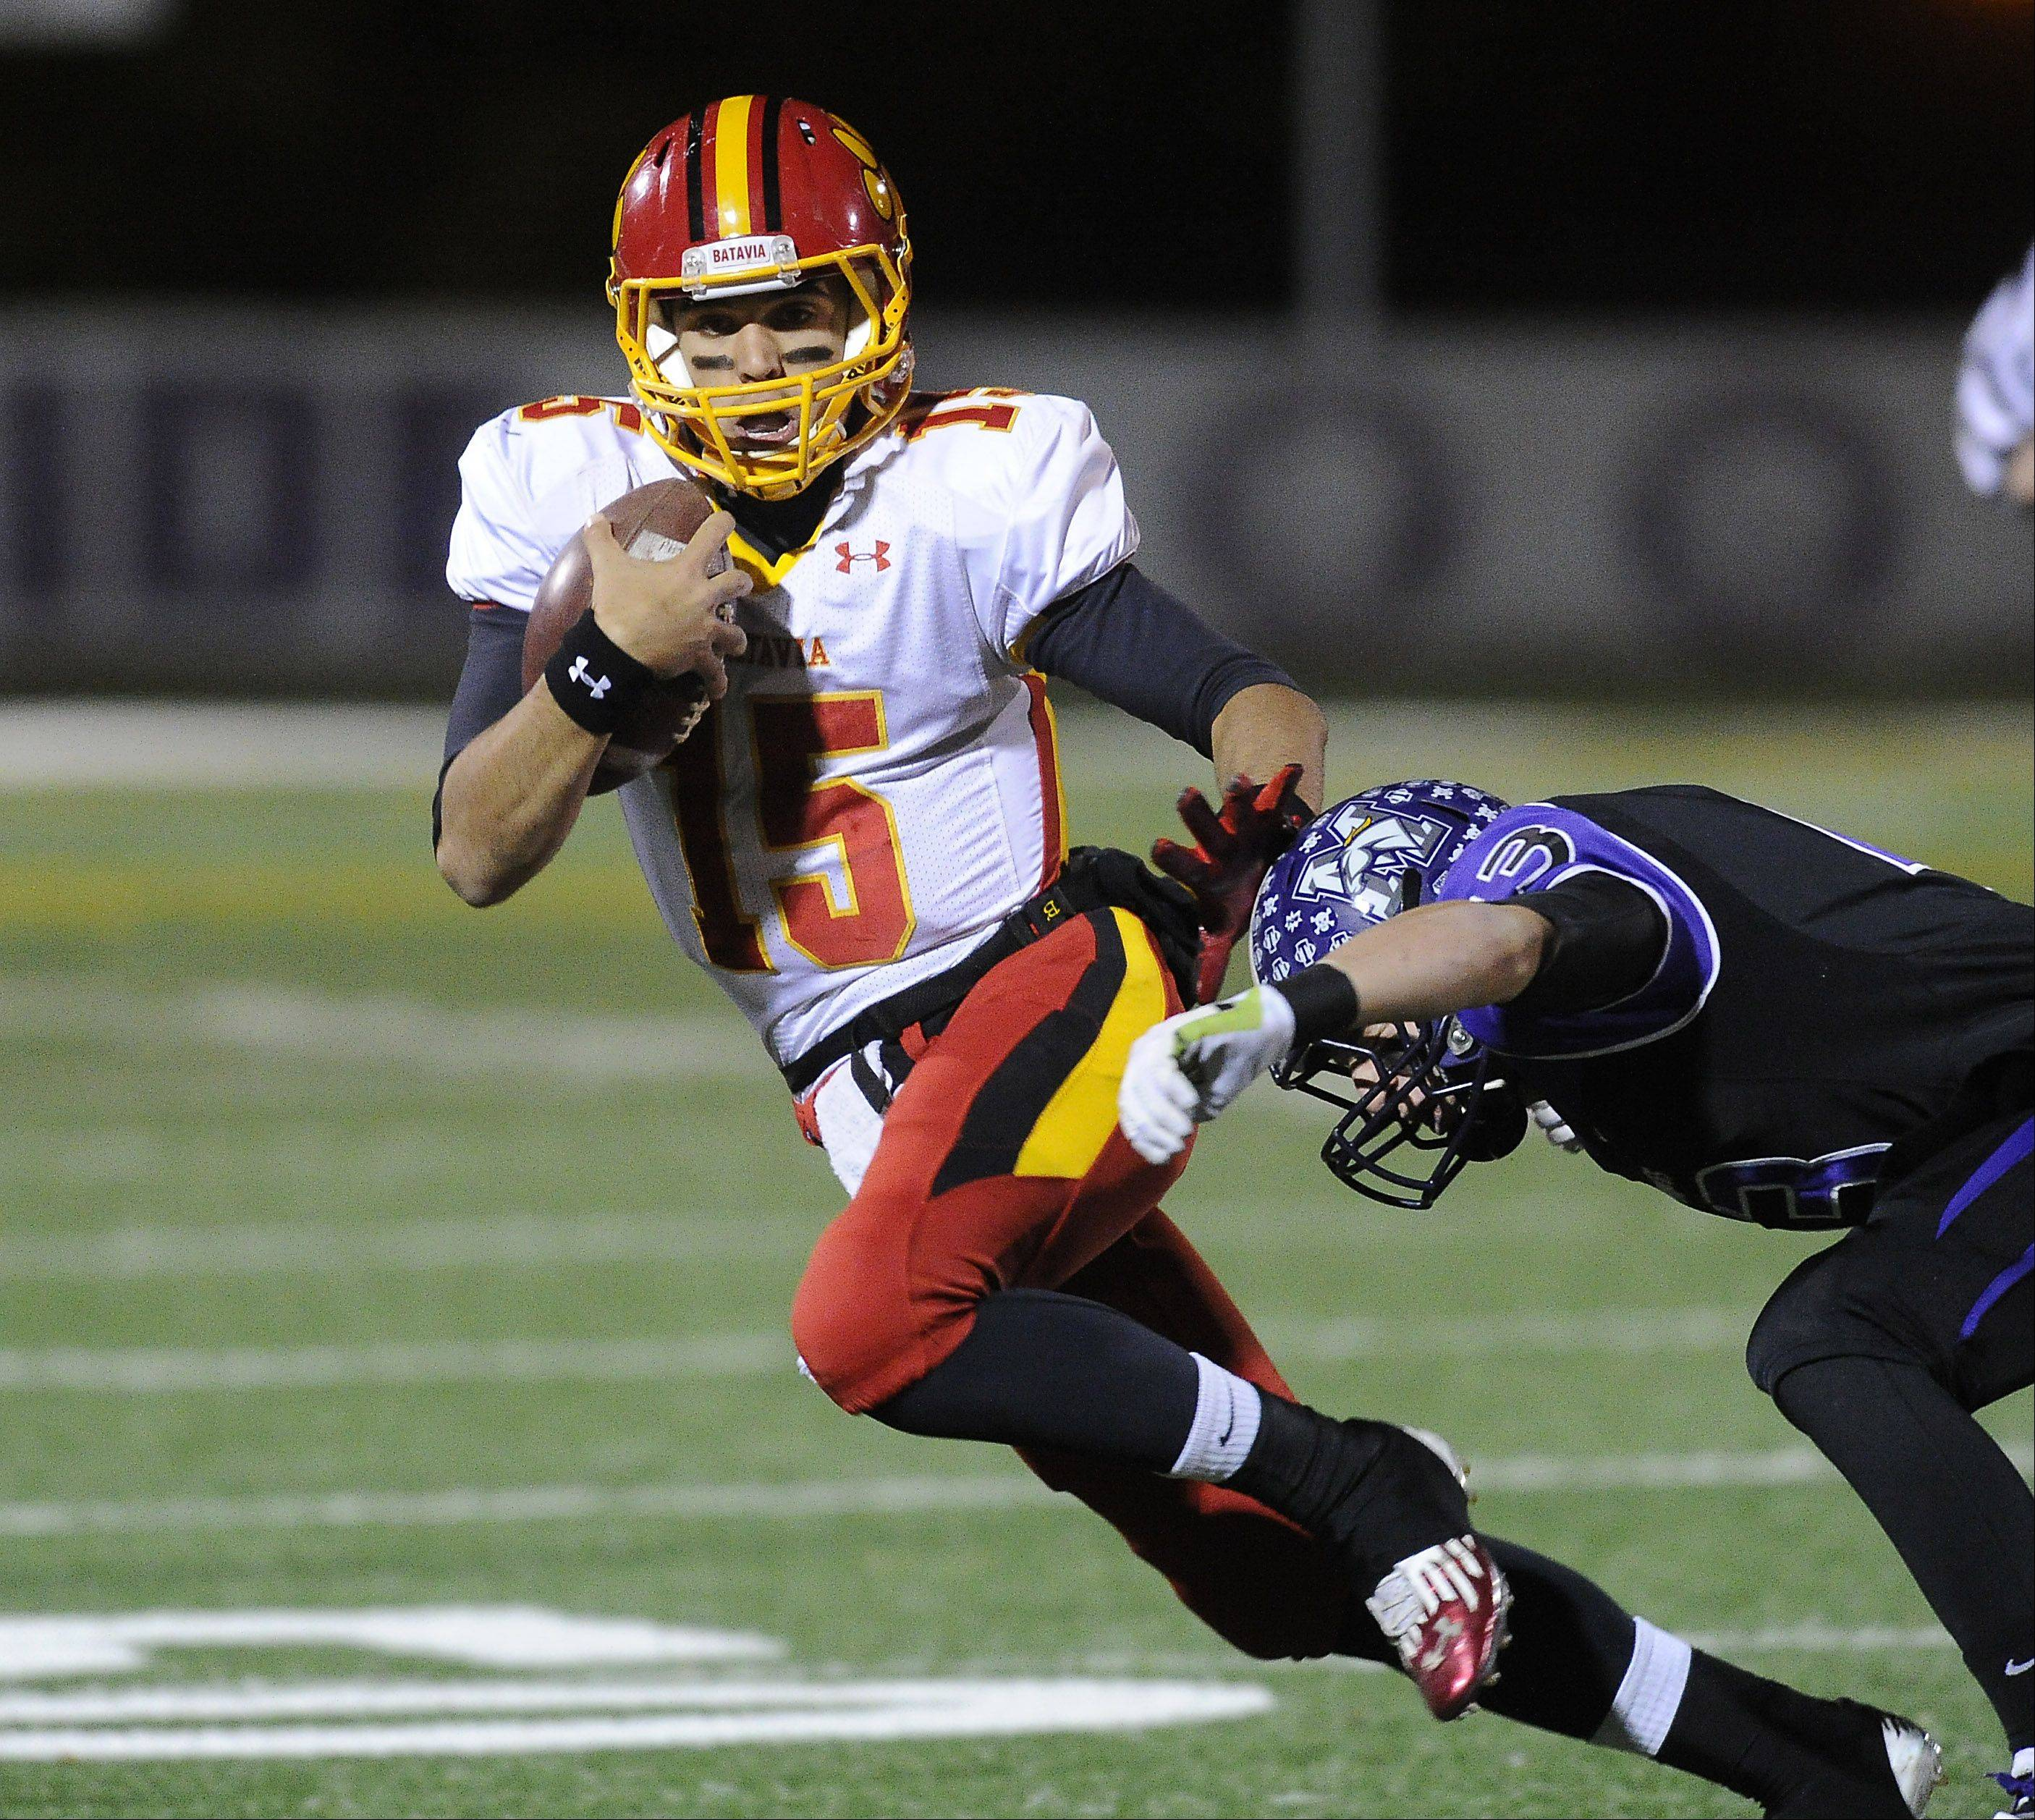 Batavia quarterback Micah Coffey scrambles for yardage in the first quarter as Rolling Meadows' Peyton Dezonna tries for the tackle.